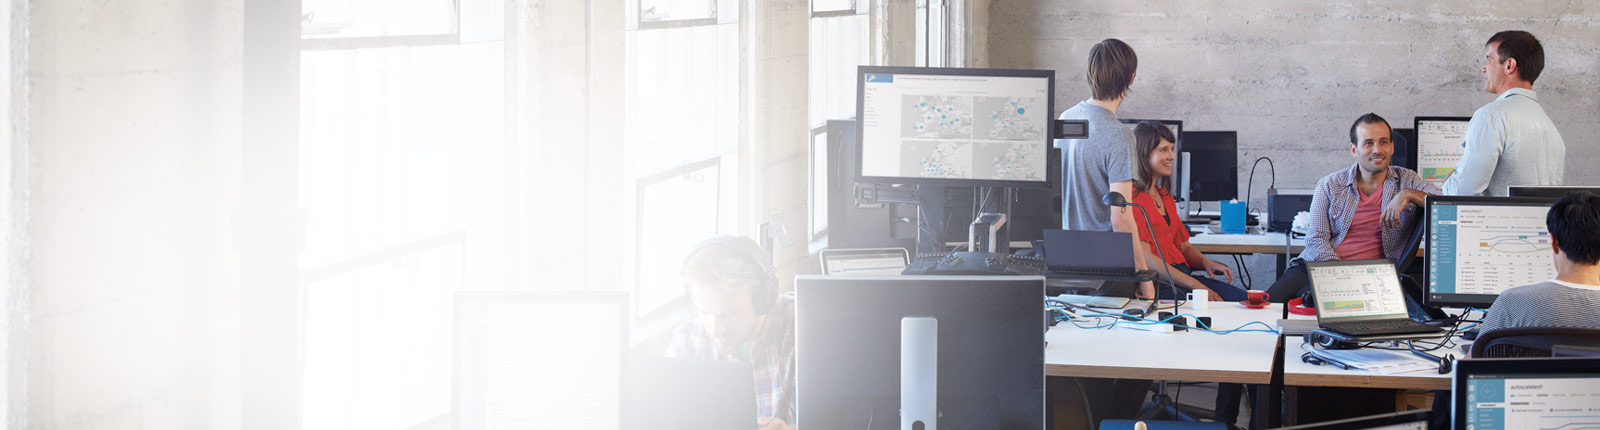 Five people working at their desktops in an office, using Office 365.